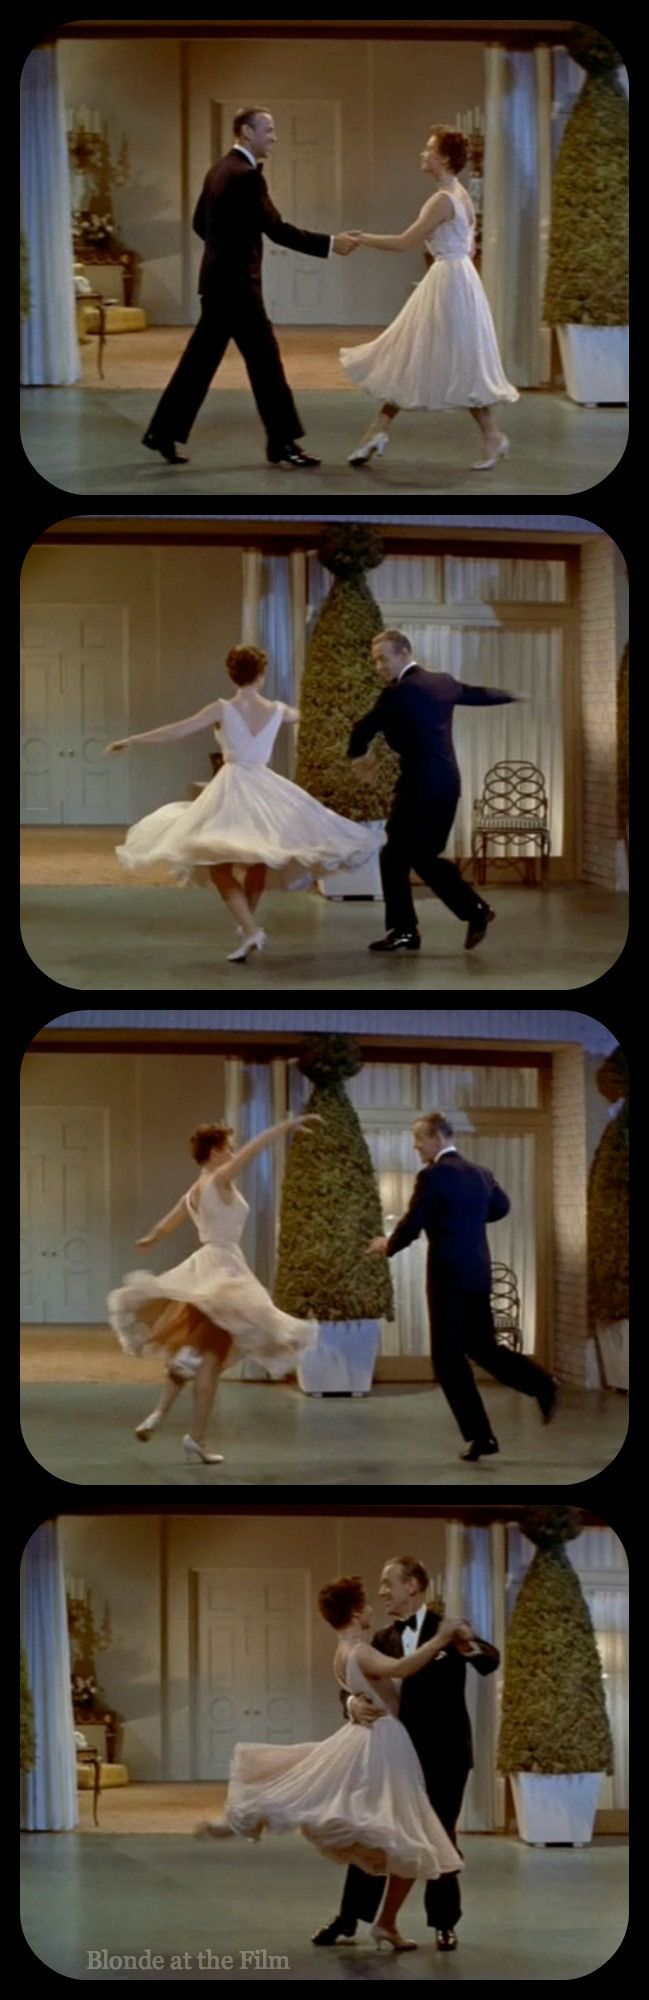 Daddy Long Legs: Leslie Caron and Fred Astaire